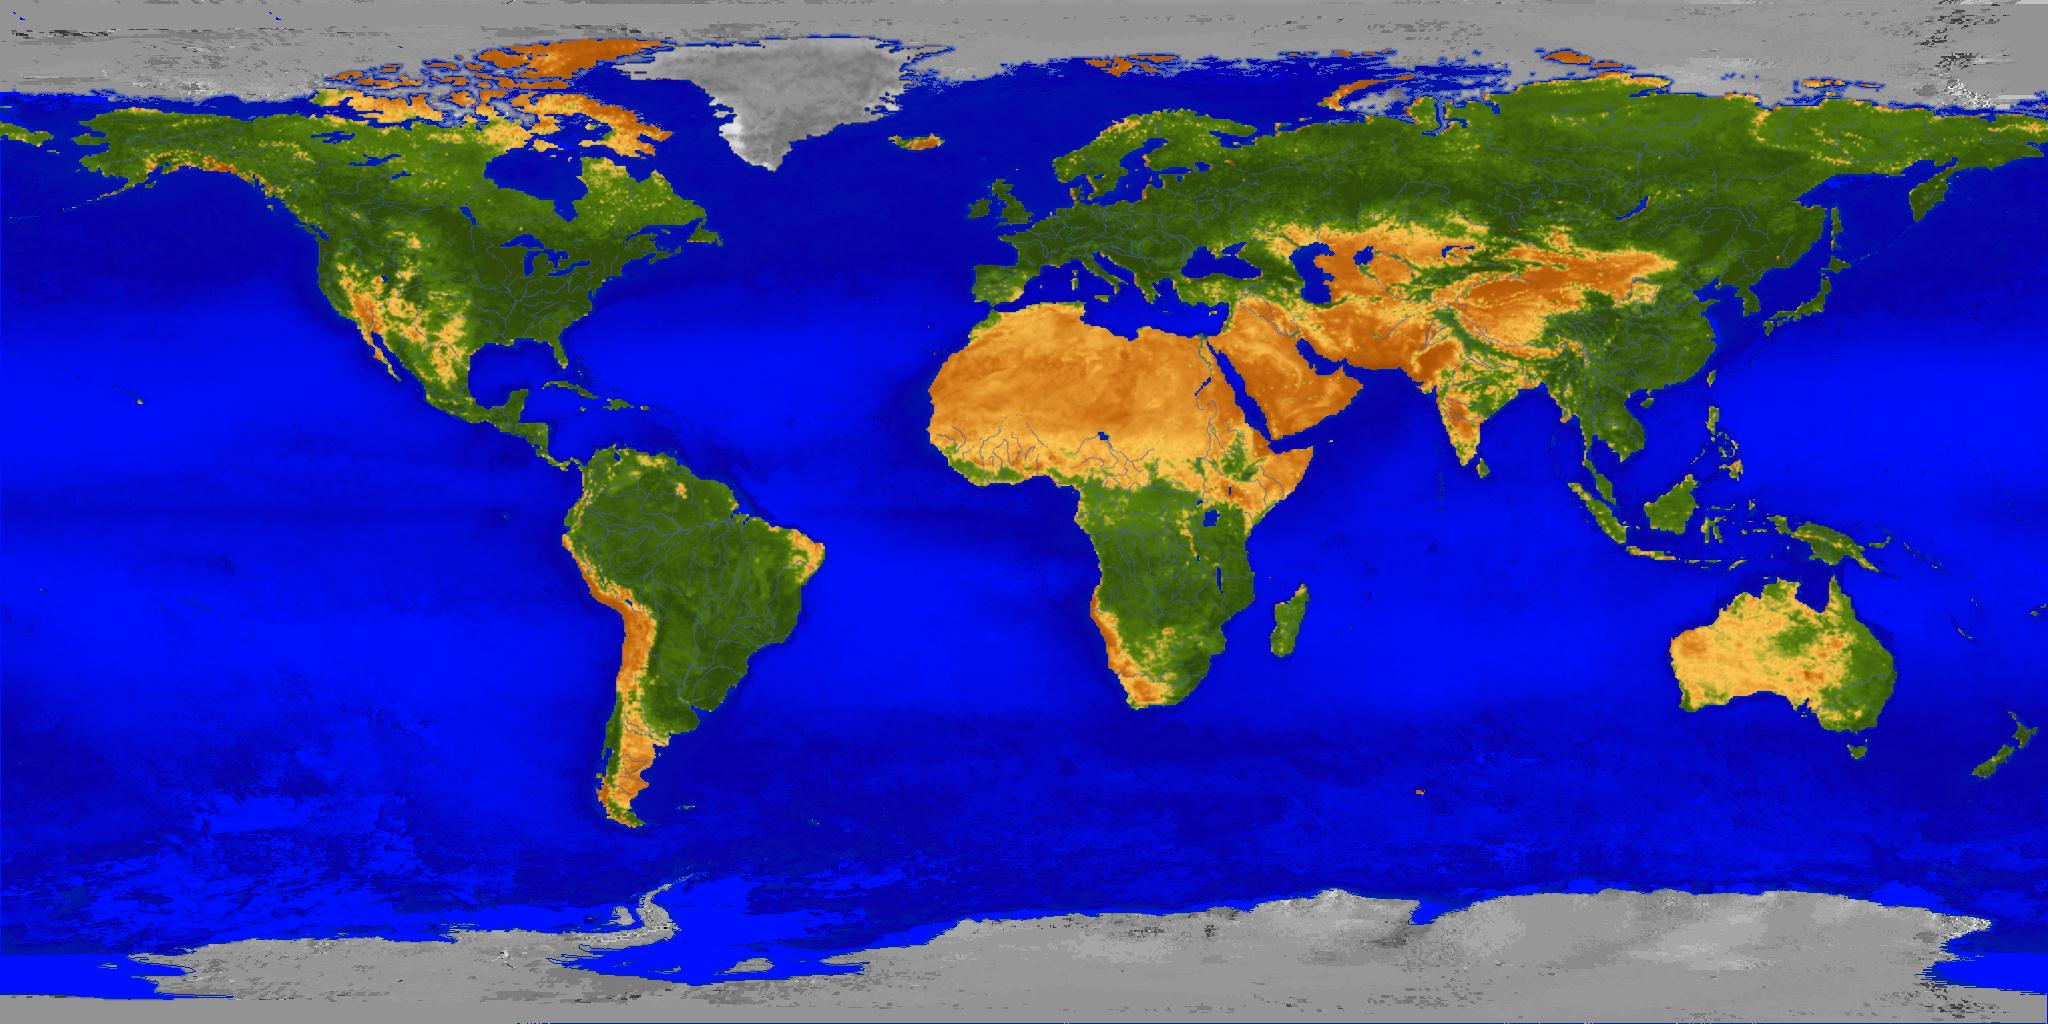 earth map nasa - photo #24